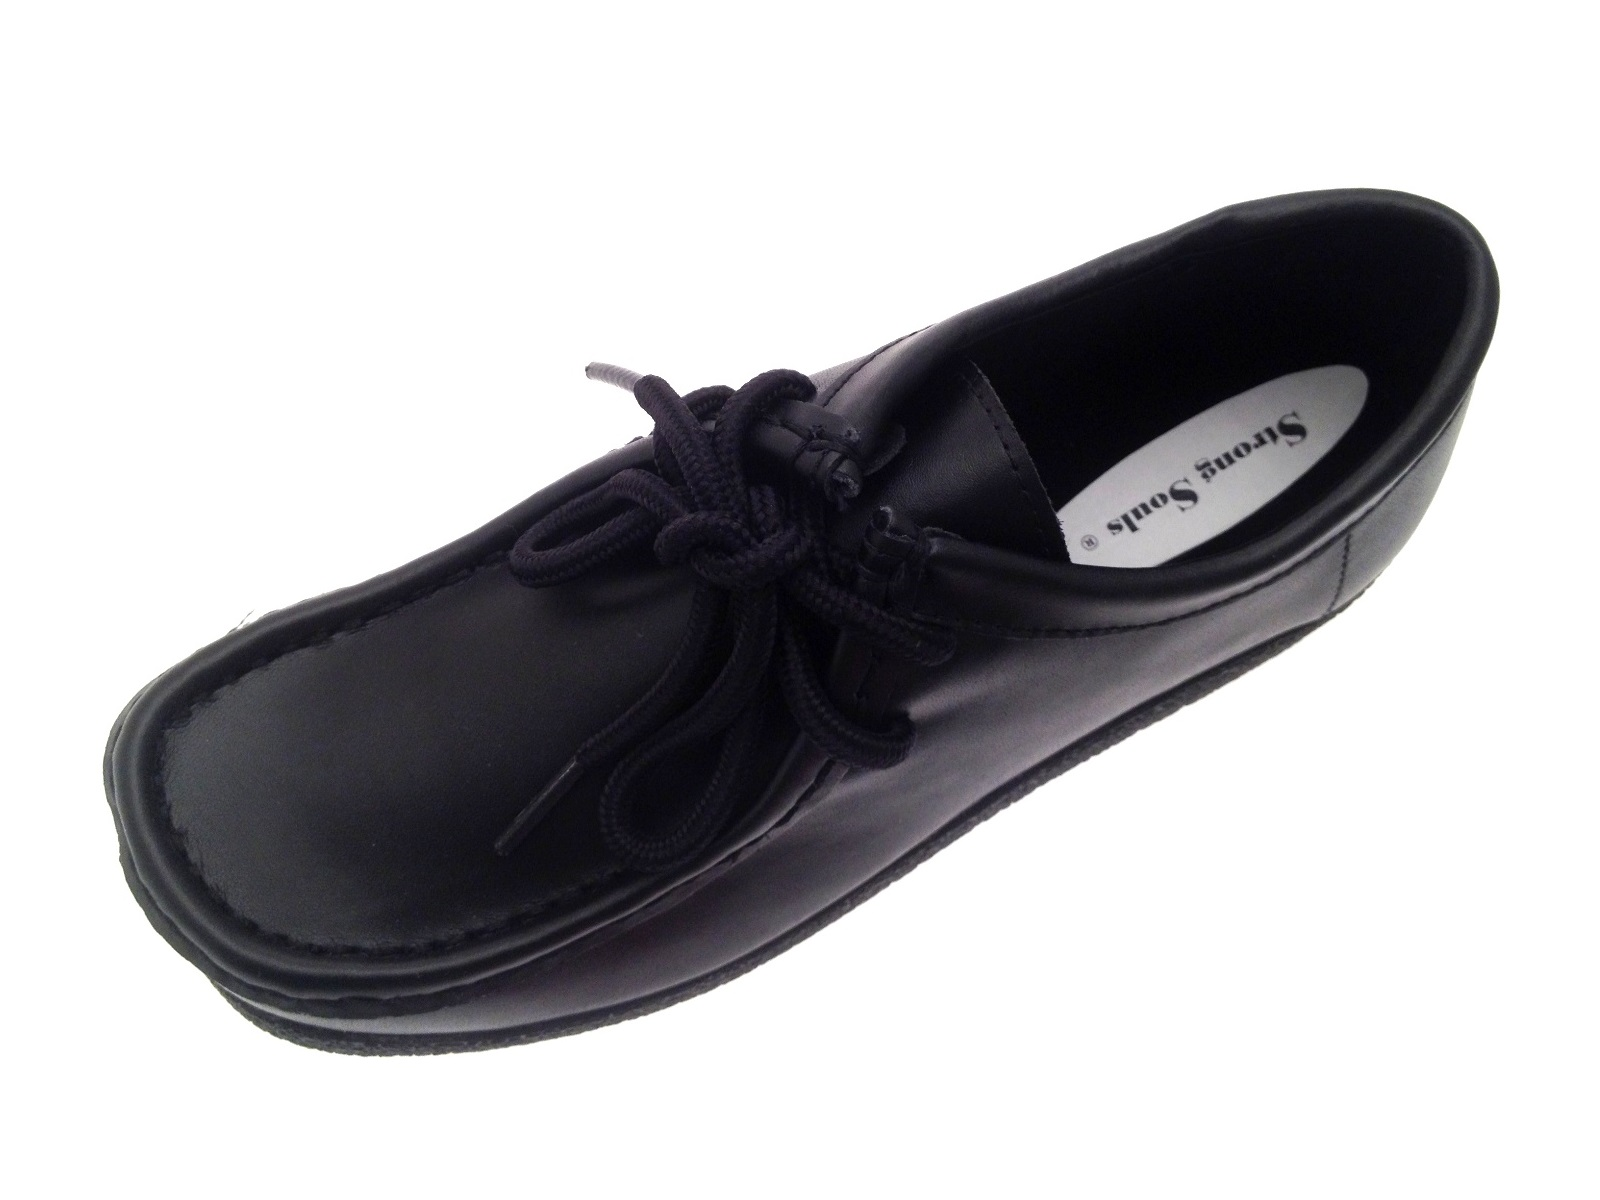 Girls Black Leather School Shoes Womens Lace Up Work Loafers ... f12ef0630